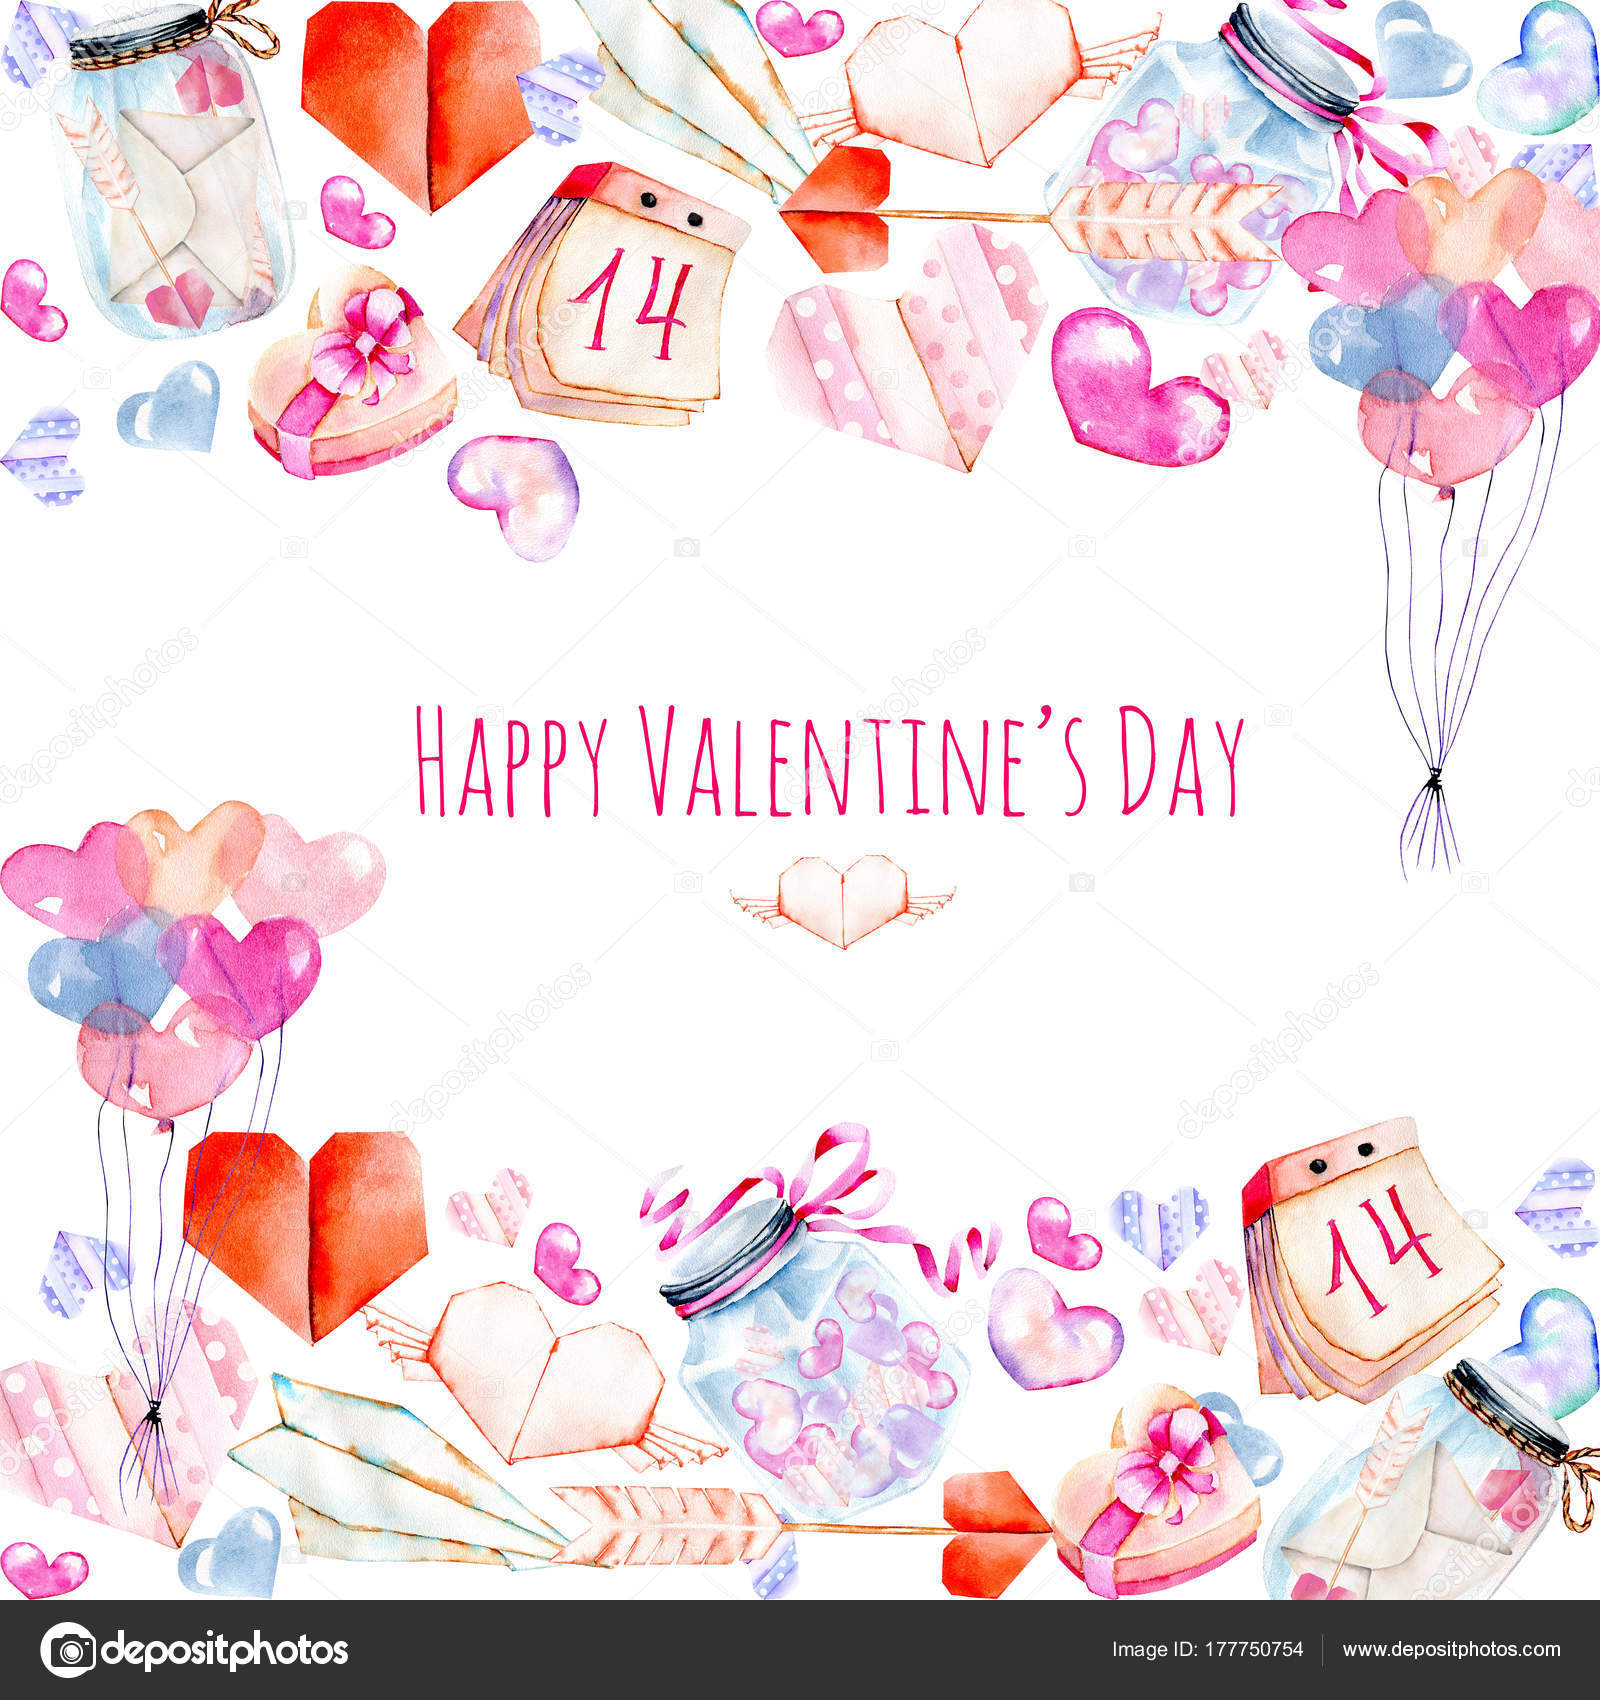 Watercolor Valentine Day Elements Greeting Card Hearts Origami Arrow